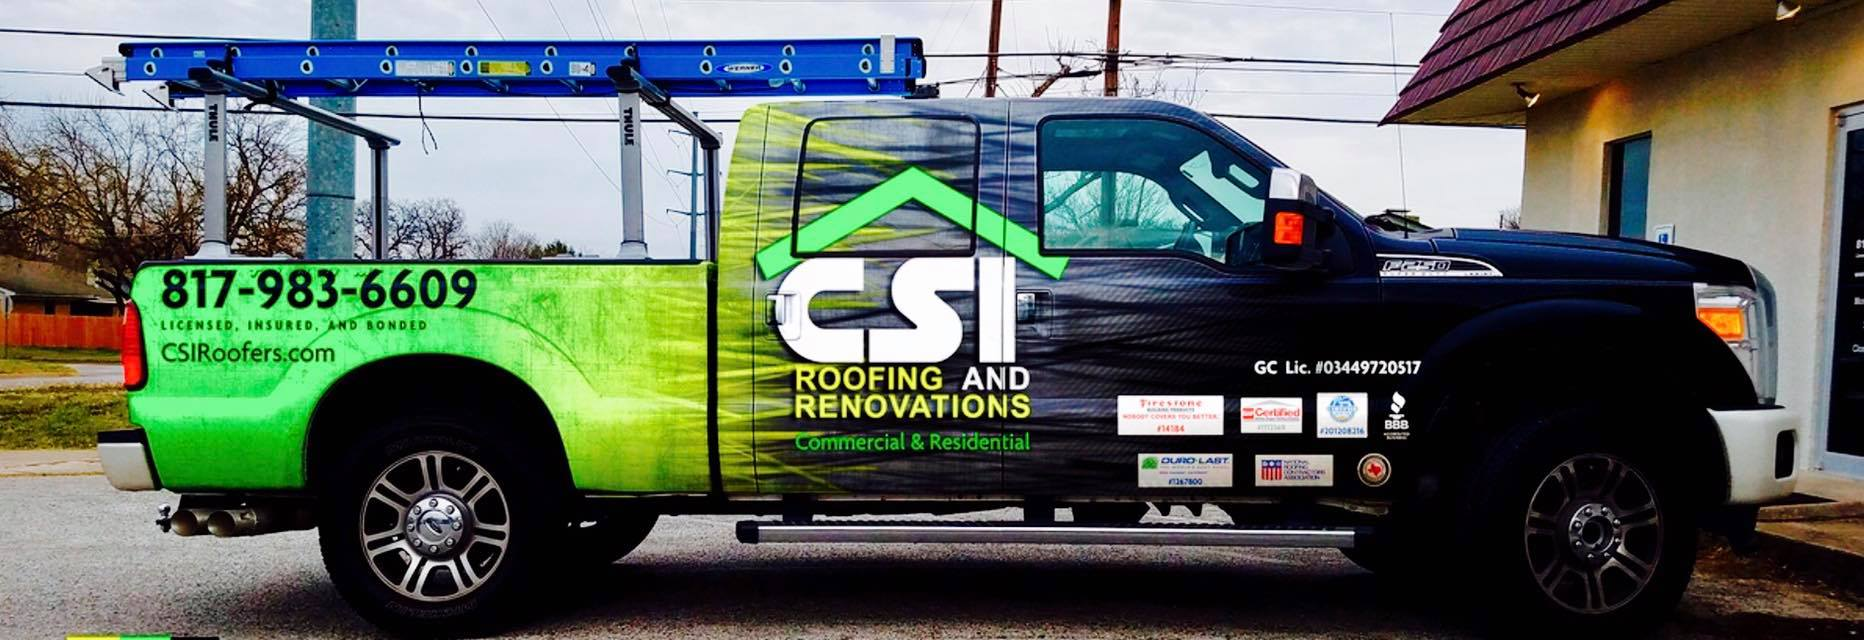 CSI Truck Giving Free Roofing Estimate